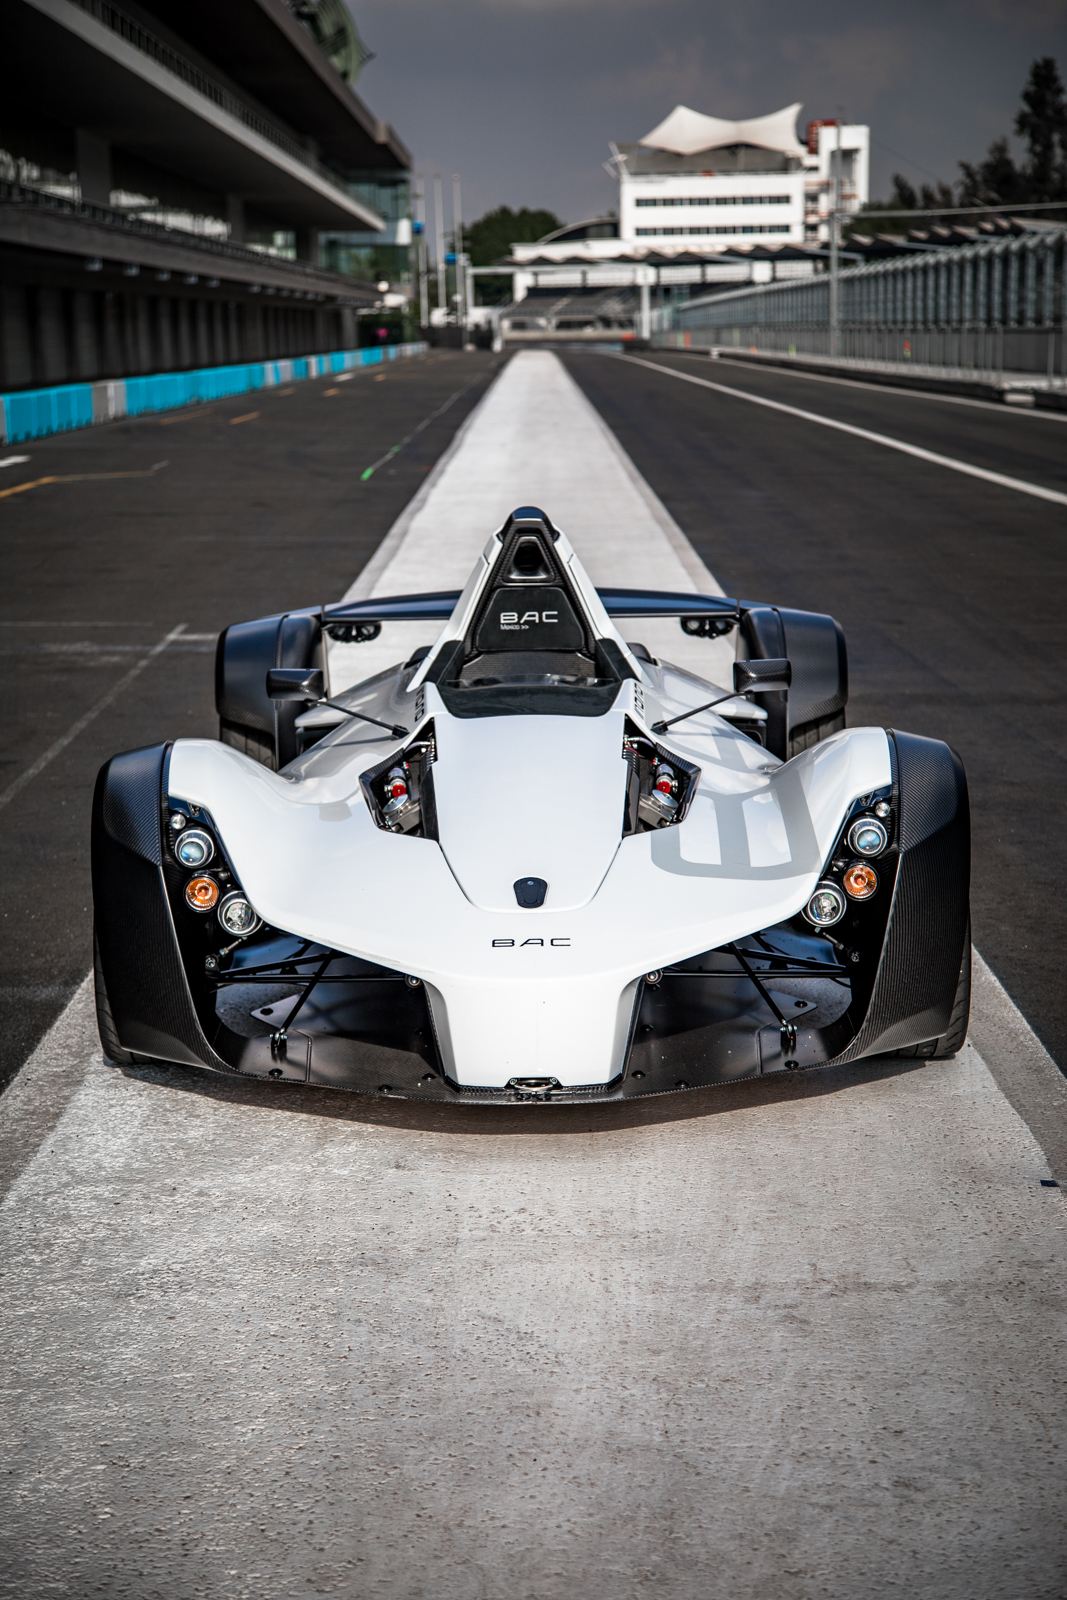 Motorsport PR: New Briggs Automotive Company (BAC) dealership BAC Mexico has hosted its first Mono customer experience sessions in Mexico City